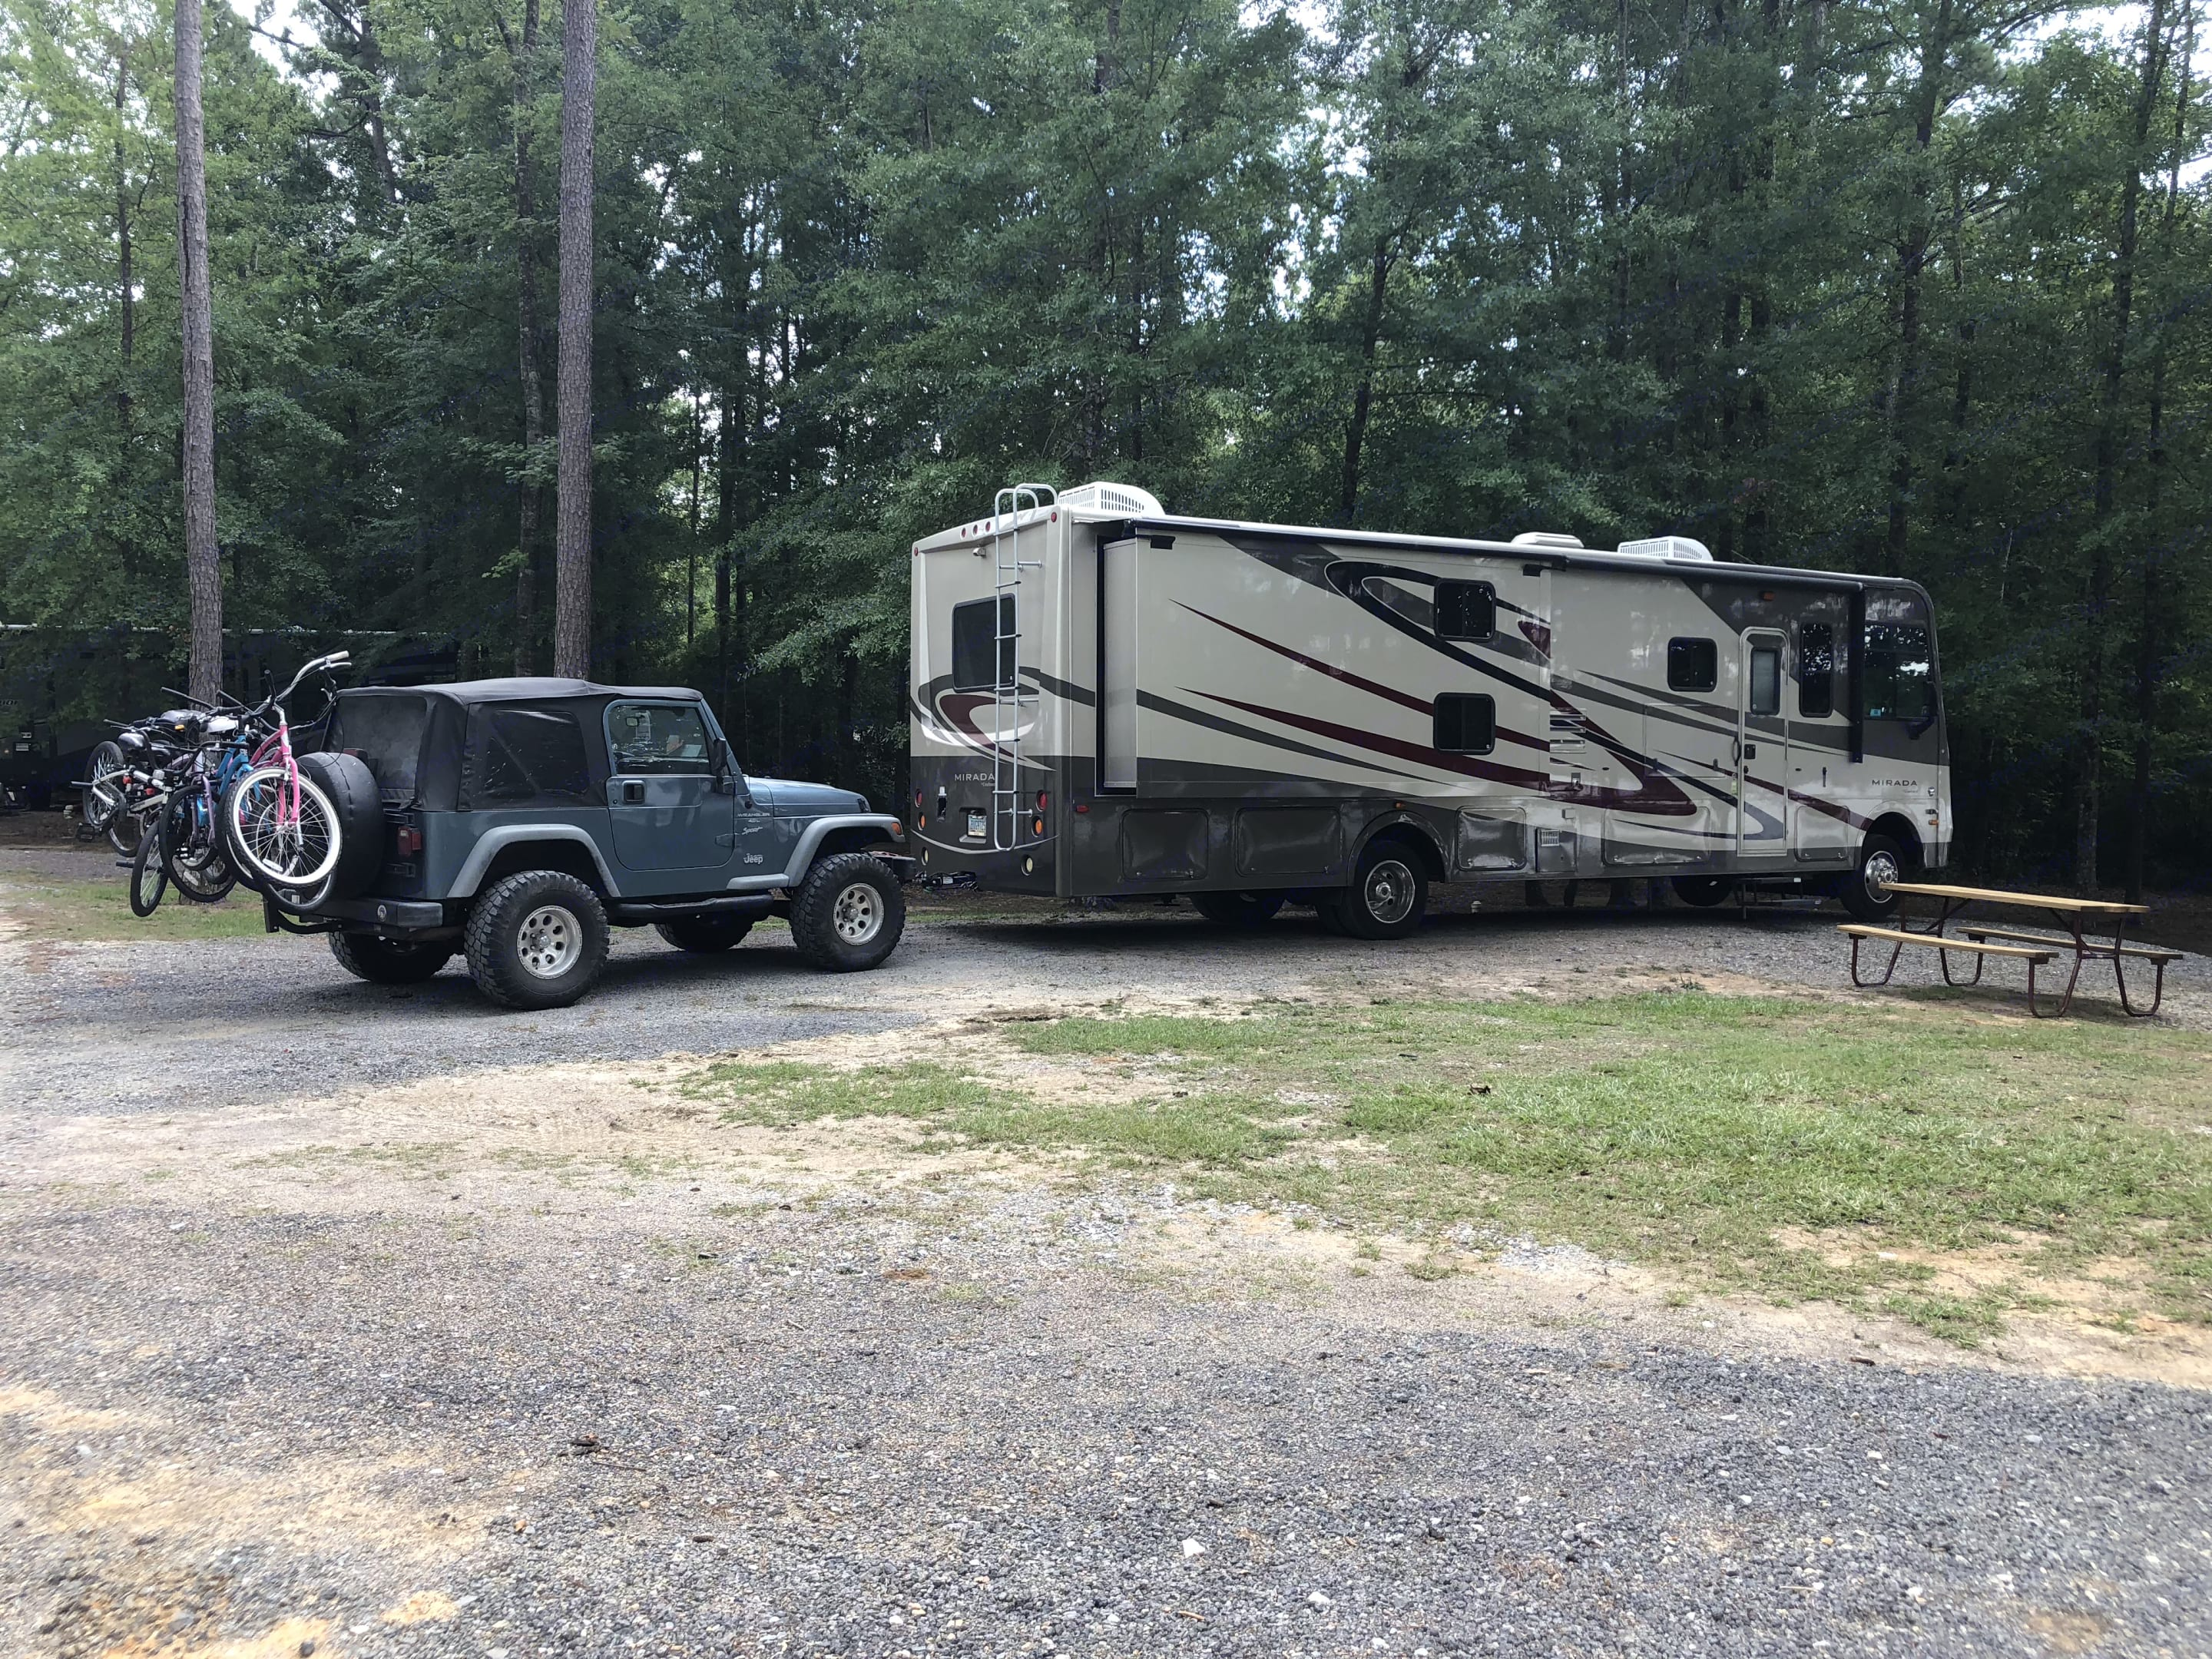 2000 Jeep Wrangler available to tow for extra charge. Coachmen Mirada 34A 2013